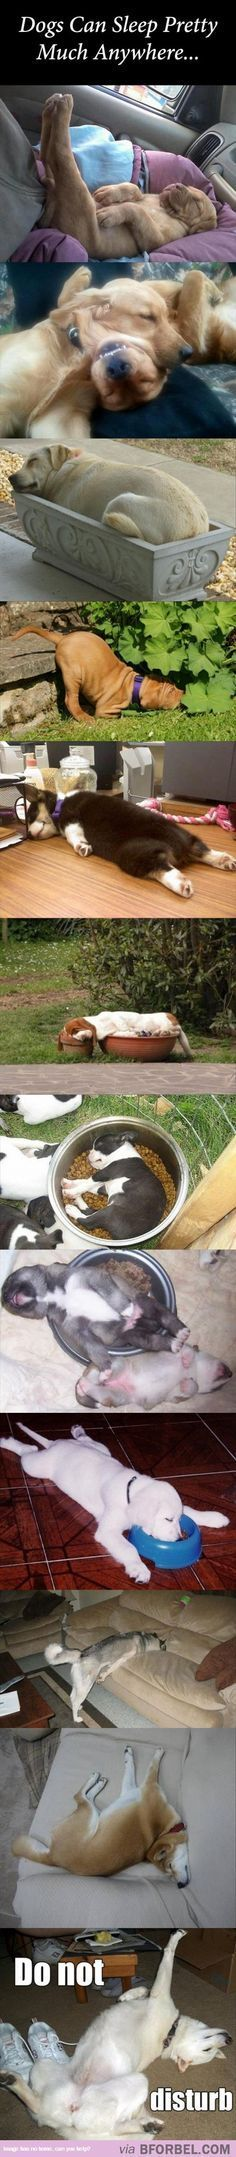 Dogs - they can slee